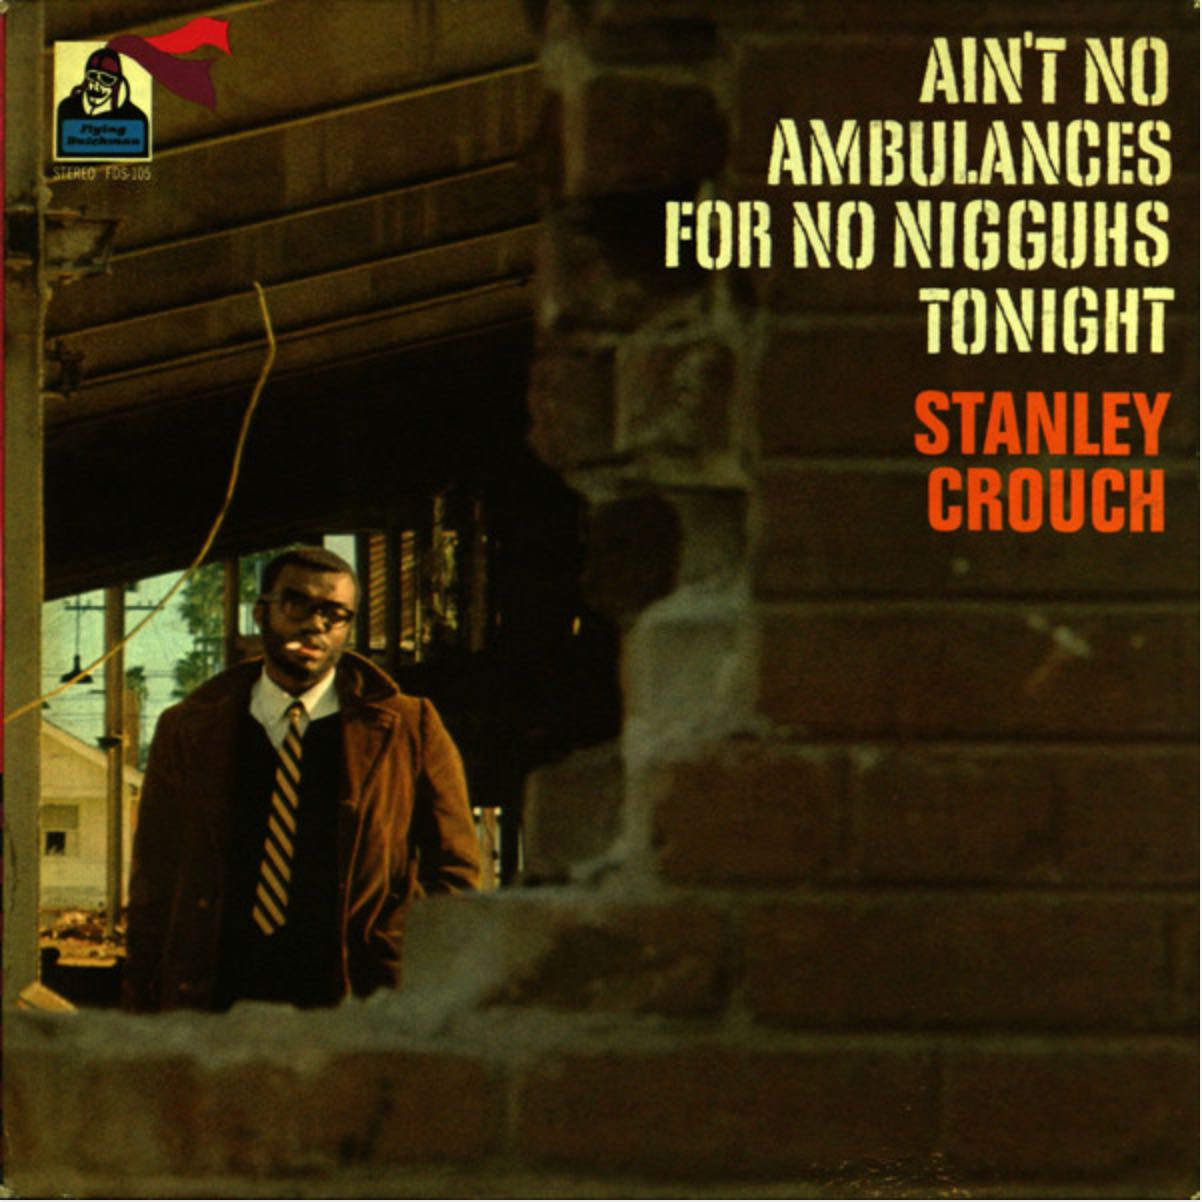 Album cover artwork for Stanley Crouch's 1969 LP